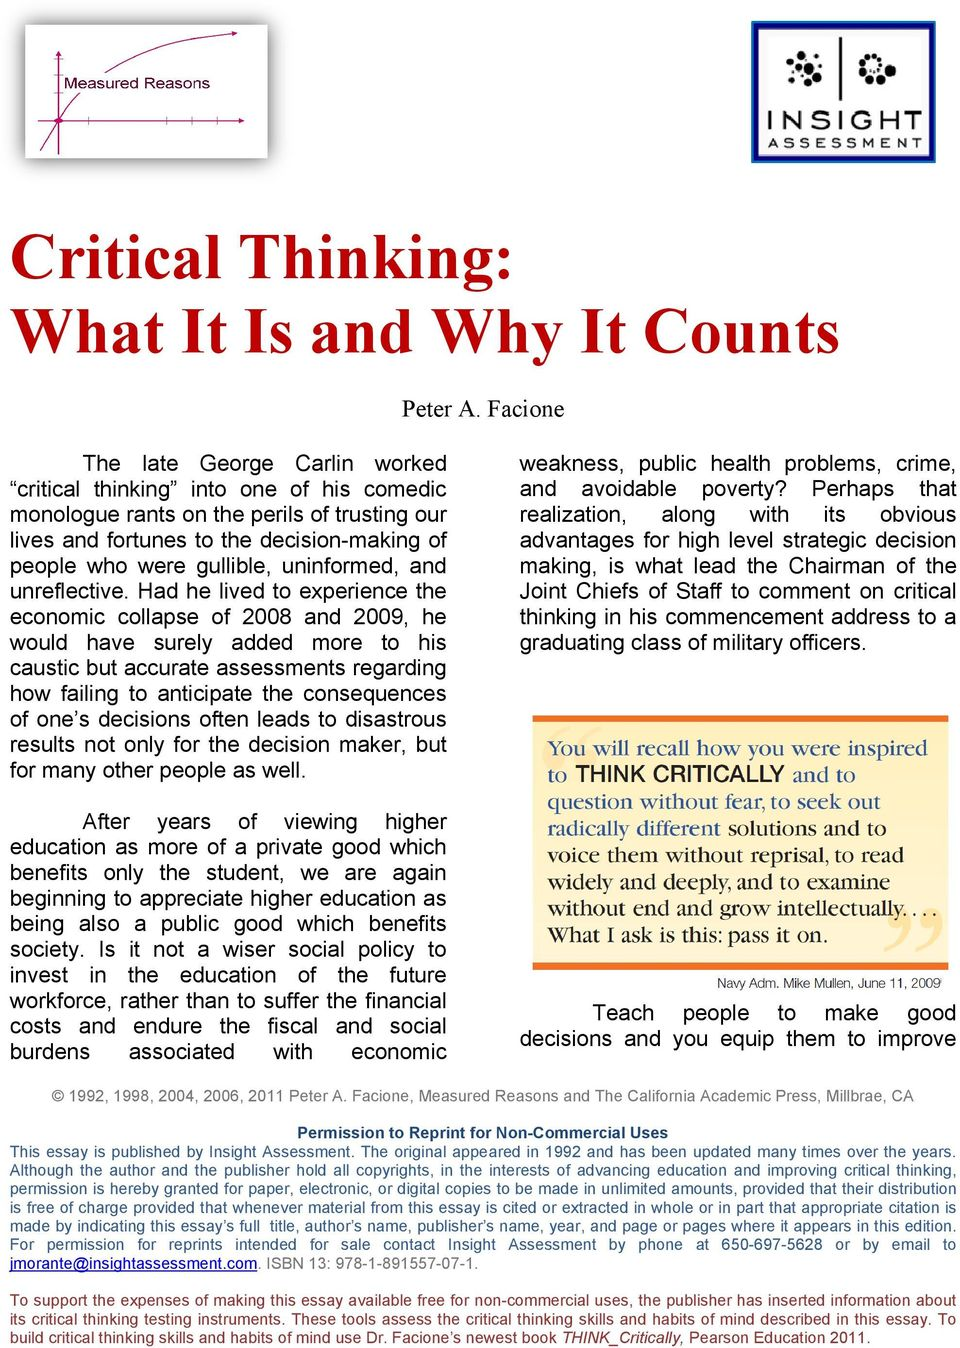 facione p 2010 critical thinking what it is and why it counts